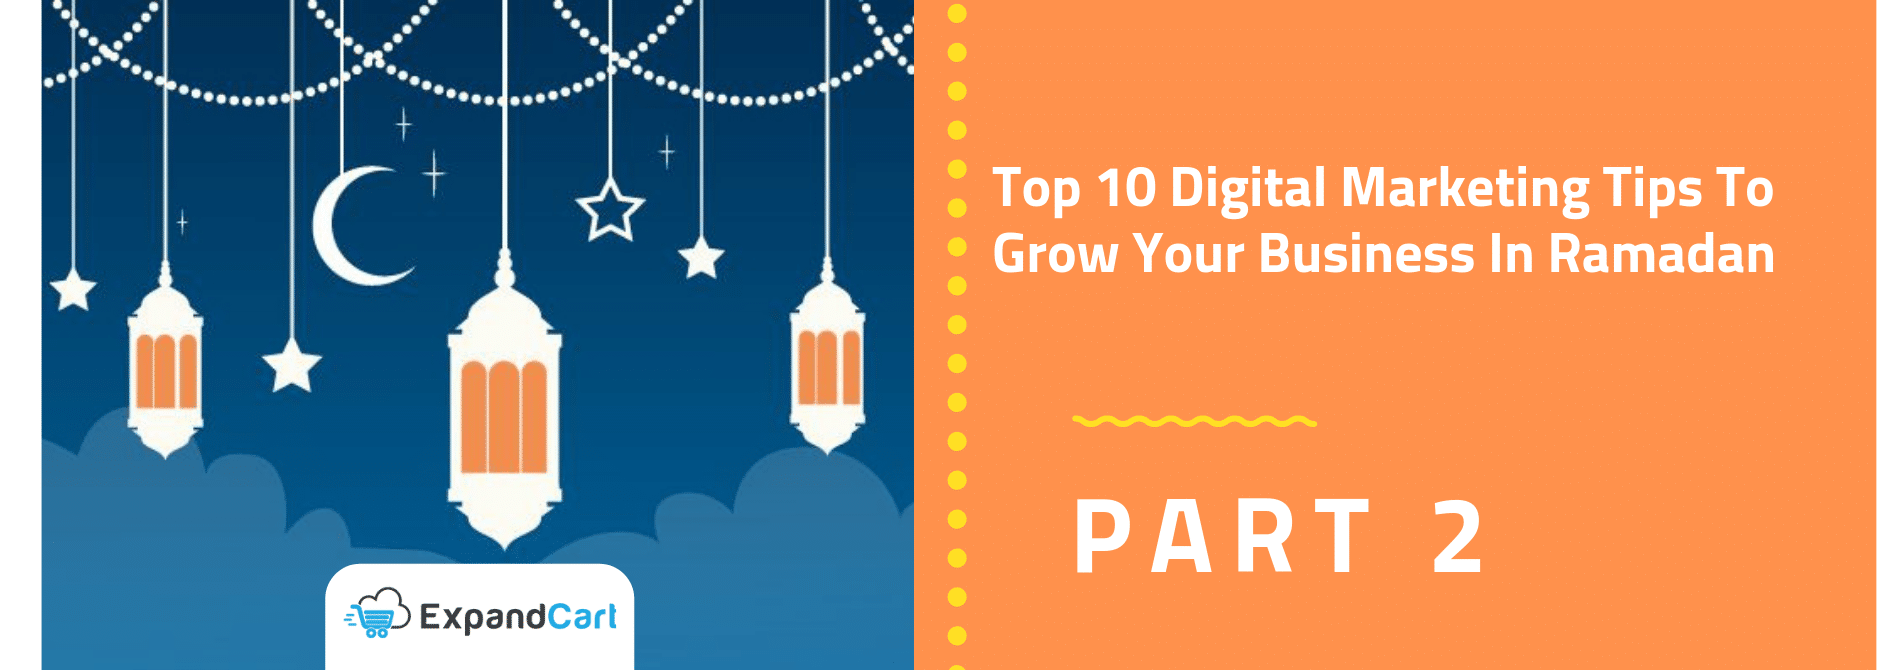 Top 10 Digital Marketing Tips To Grow Your Business In Ramadan | Part 2